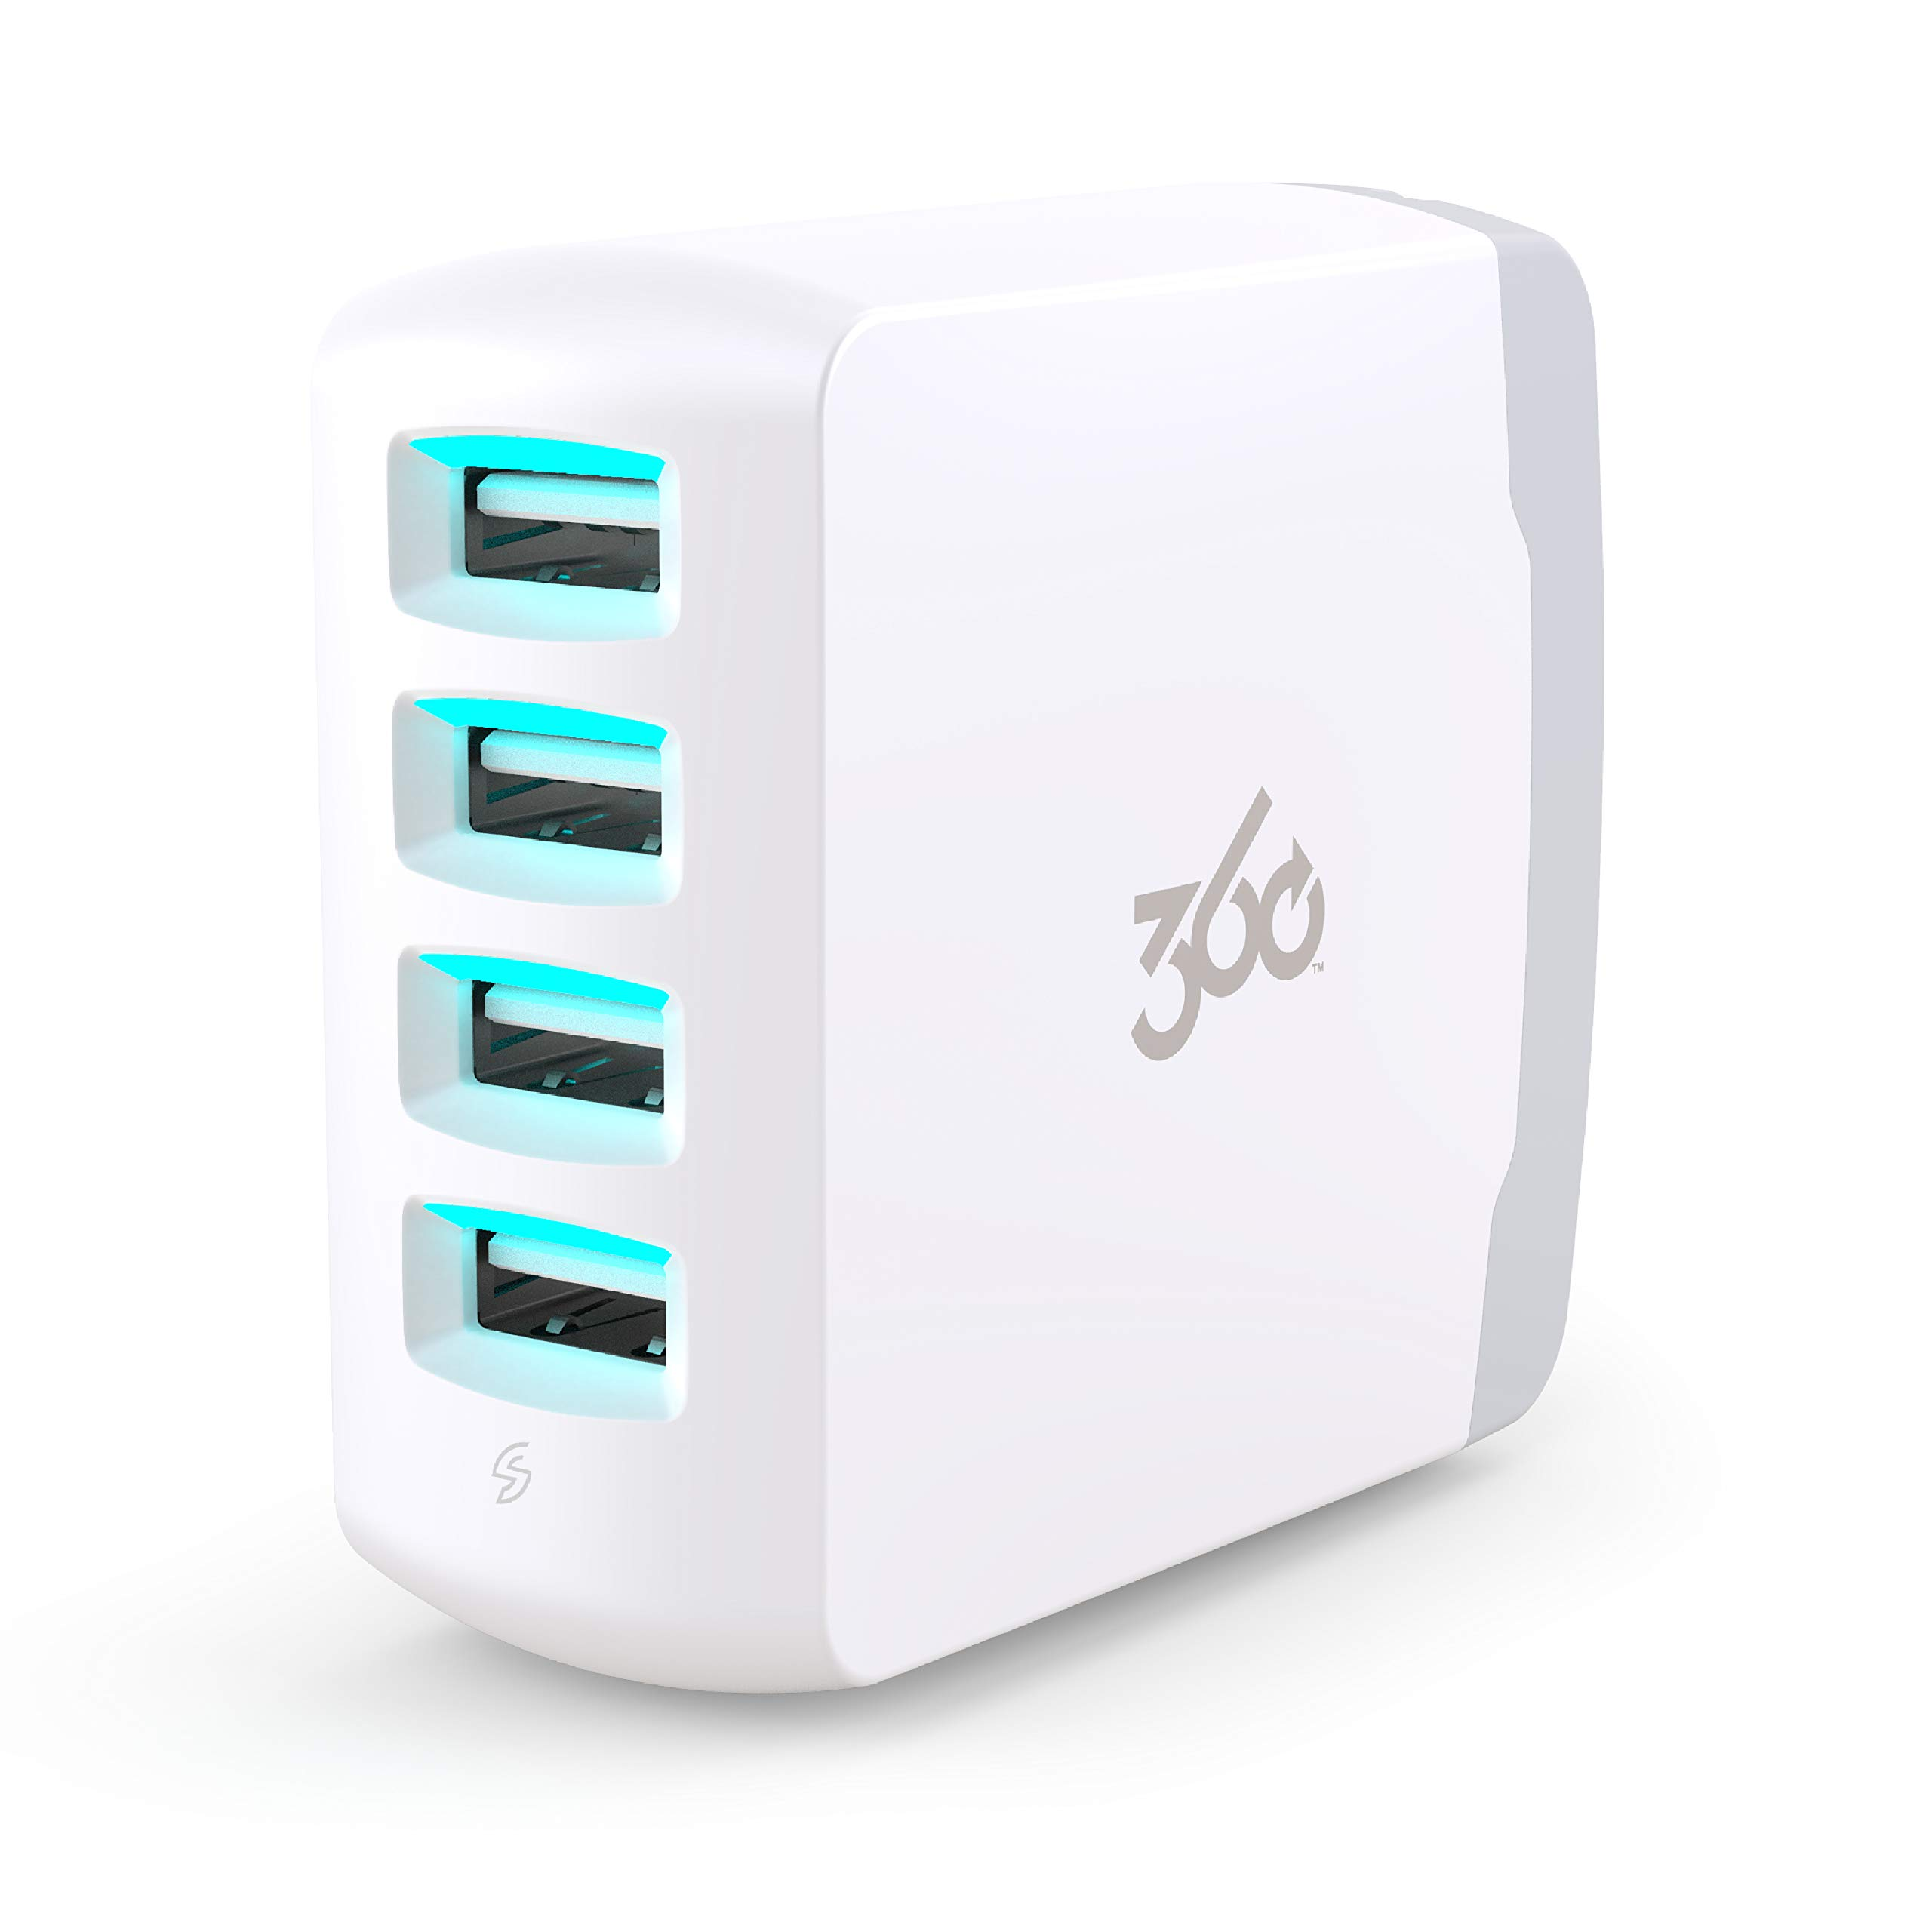 360 Electrical 360661 Vivid 8.0 USB Wall Charger with Four USB Ports, 8.0 Amp (40 Watt) Charging Power, Folding Plug, LED Guide Lights and Charge Sense Technology (White)